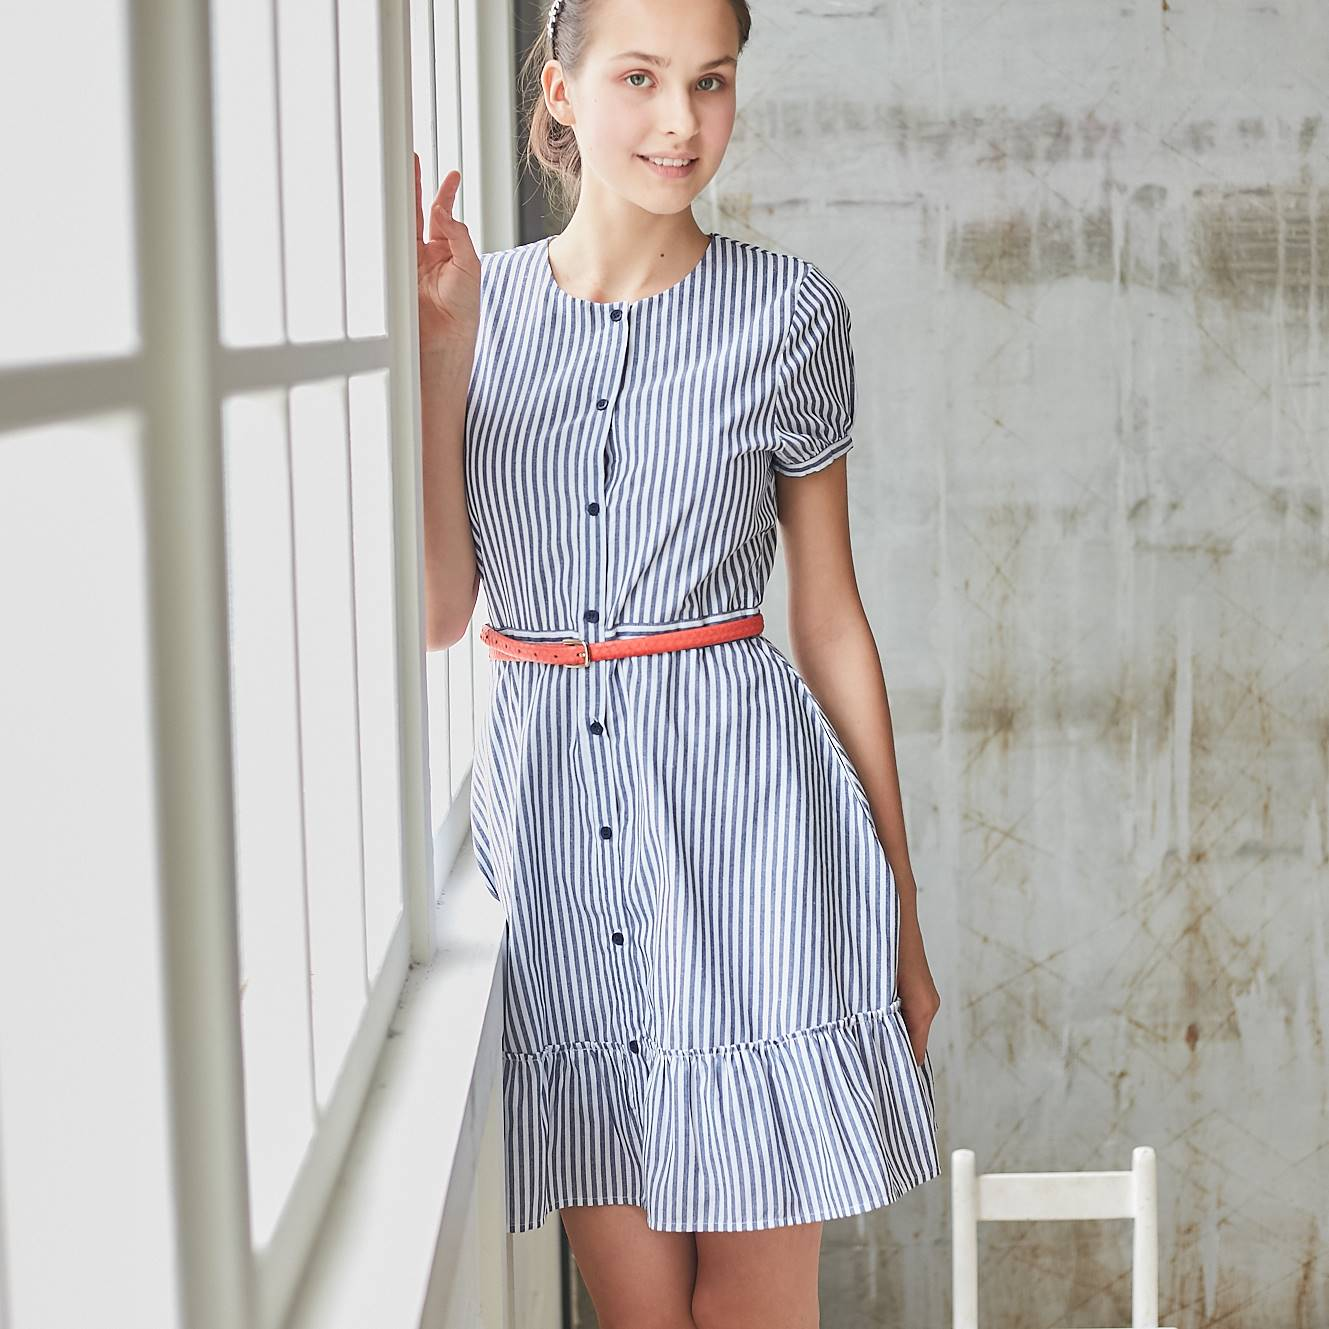 Blue & White Stripe Ruffled-Hem A-Line Dress - Bunny n Bloom Mommy & Me Dress